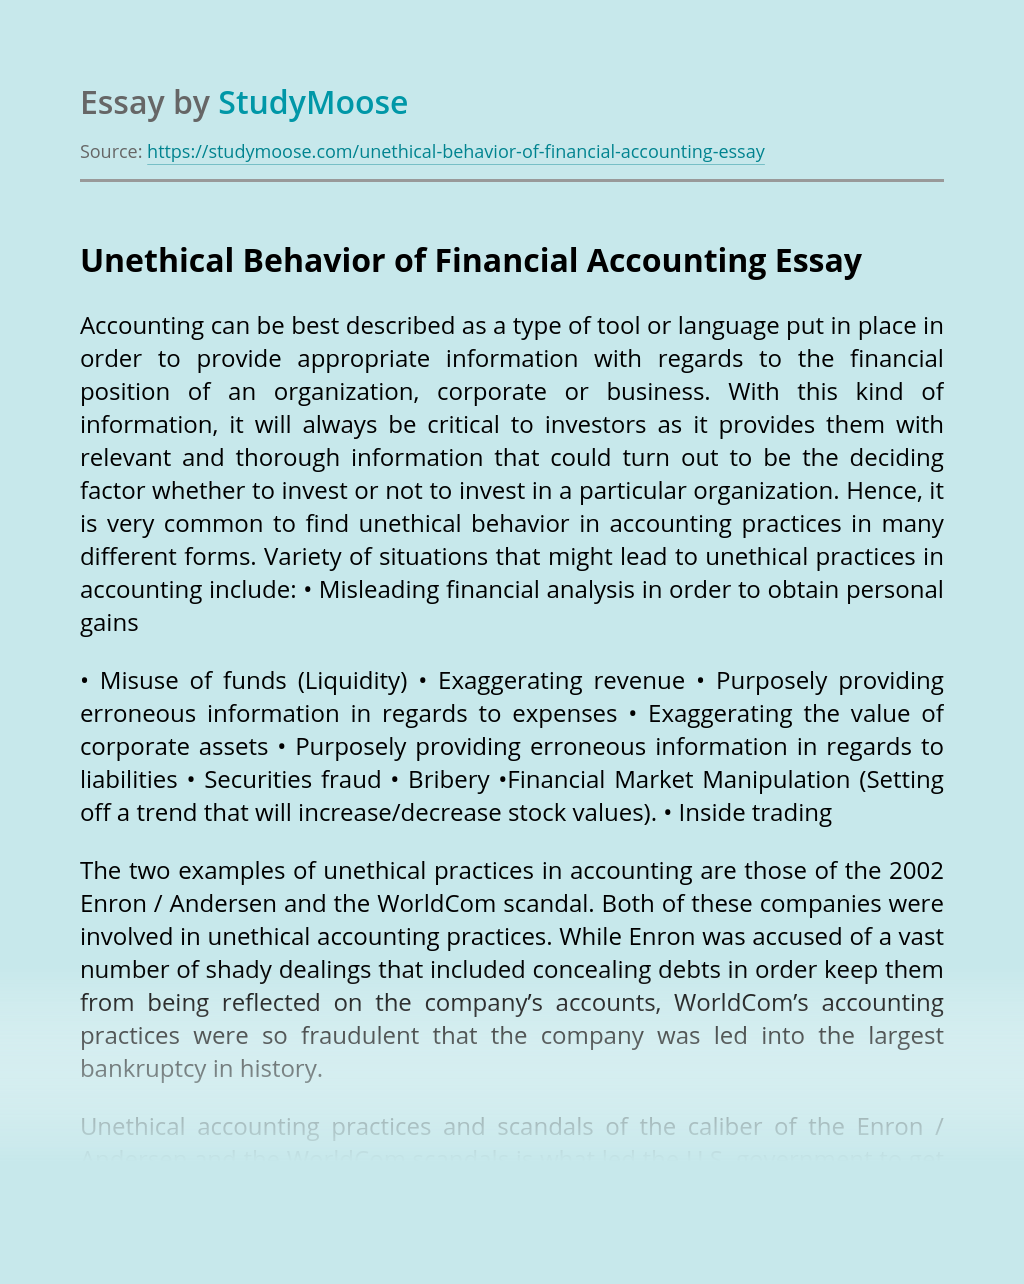 Unethical Behavior of Financial Accounting